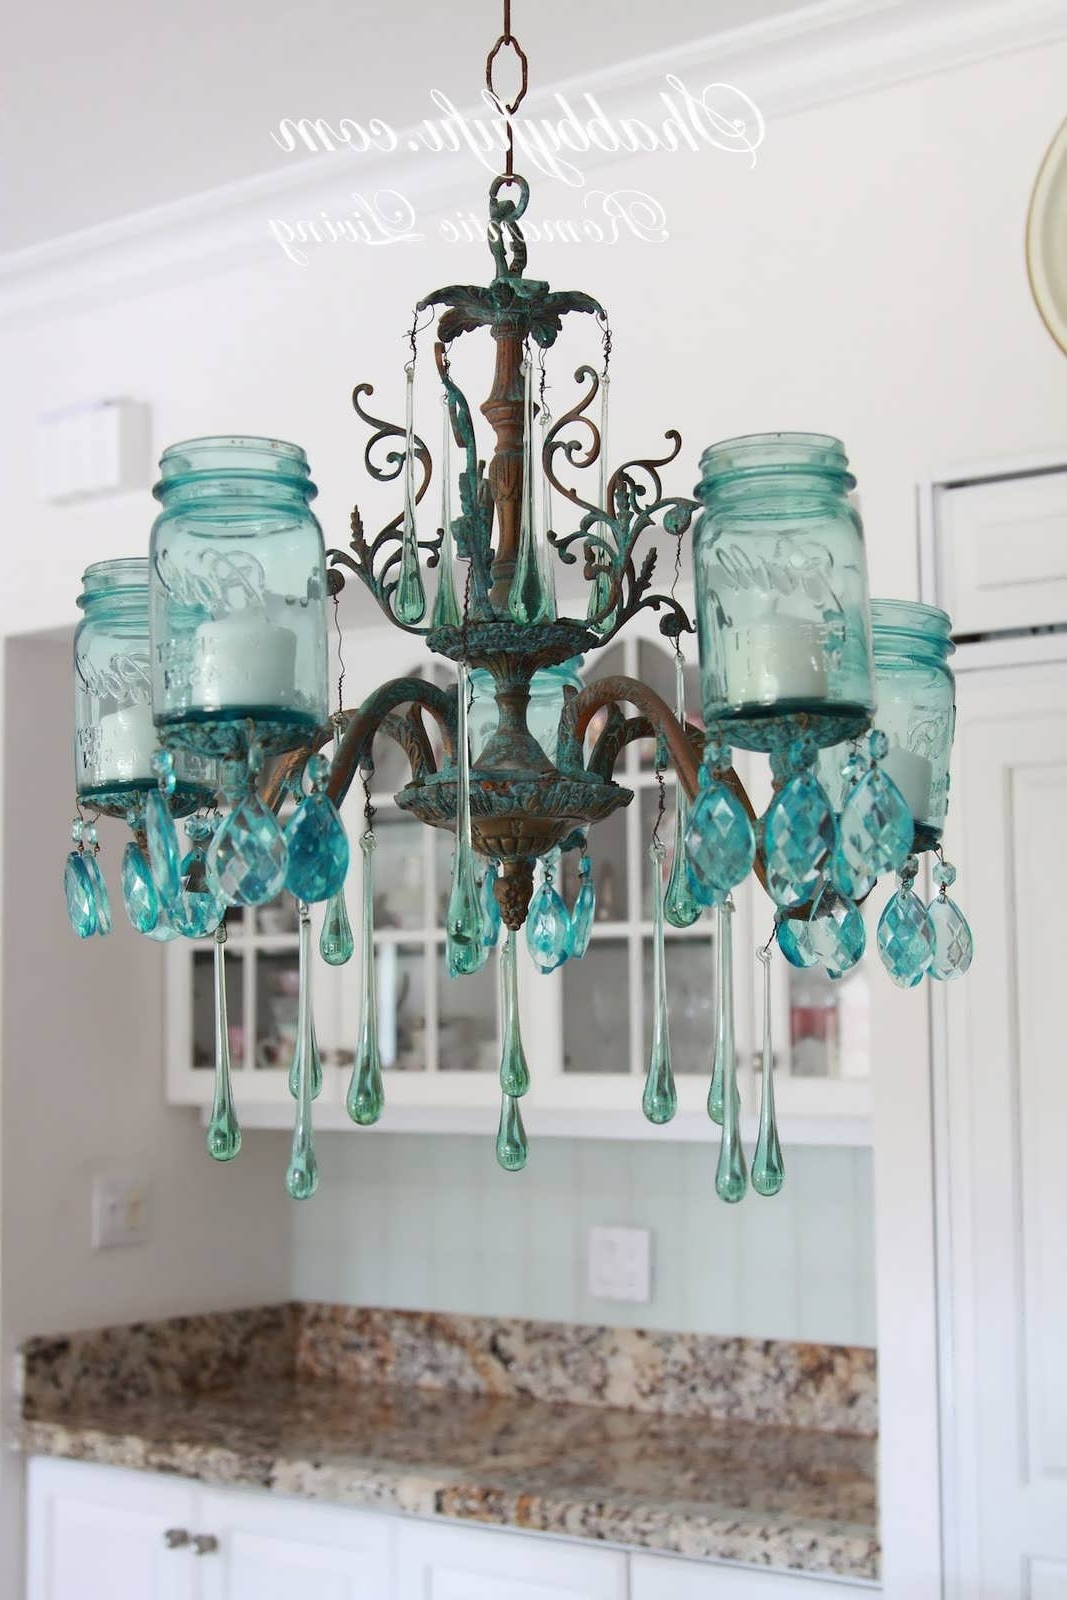 Turquoise Lantern Chandeliers Regarding Popular Chandelier : Pink Chandelier Farm Chandelier Best Chandeliers (View 15 of 20)